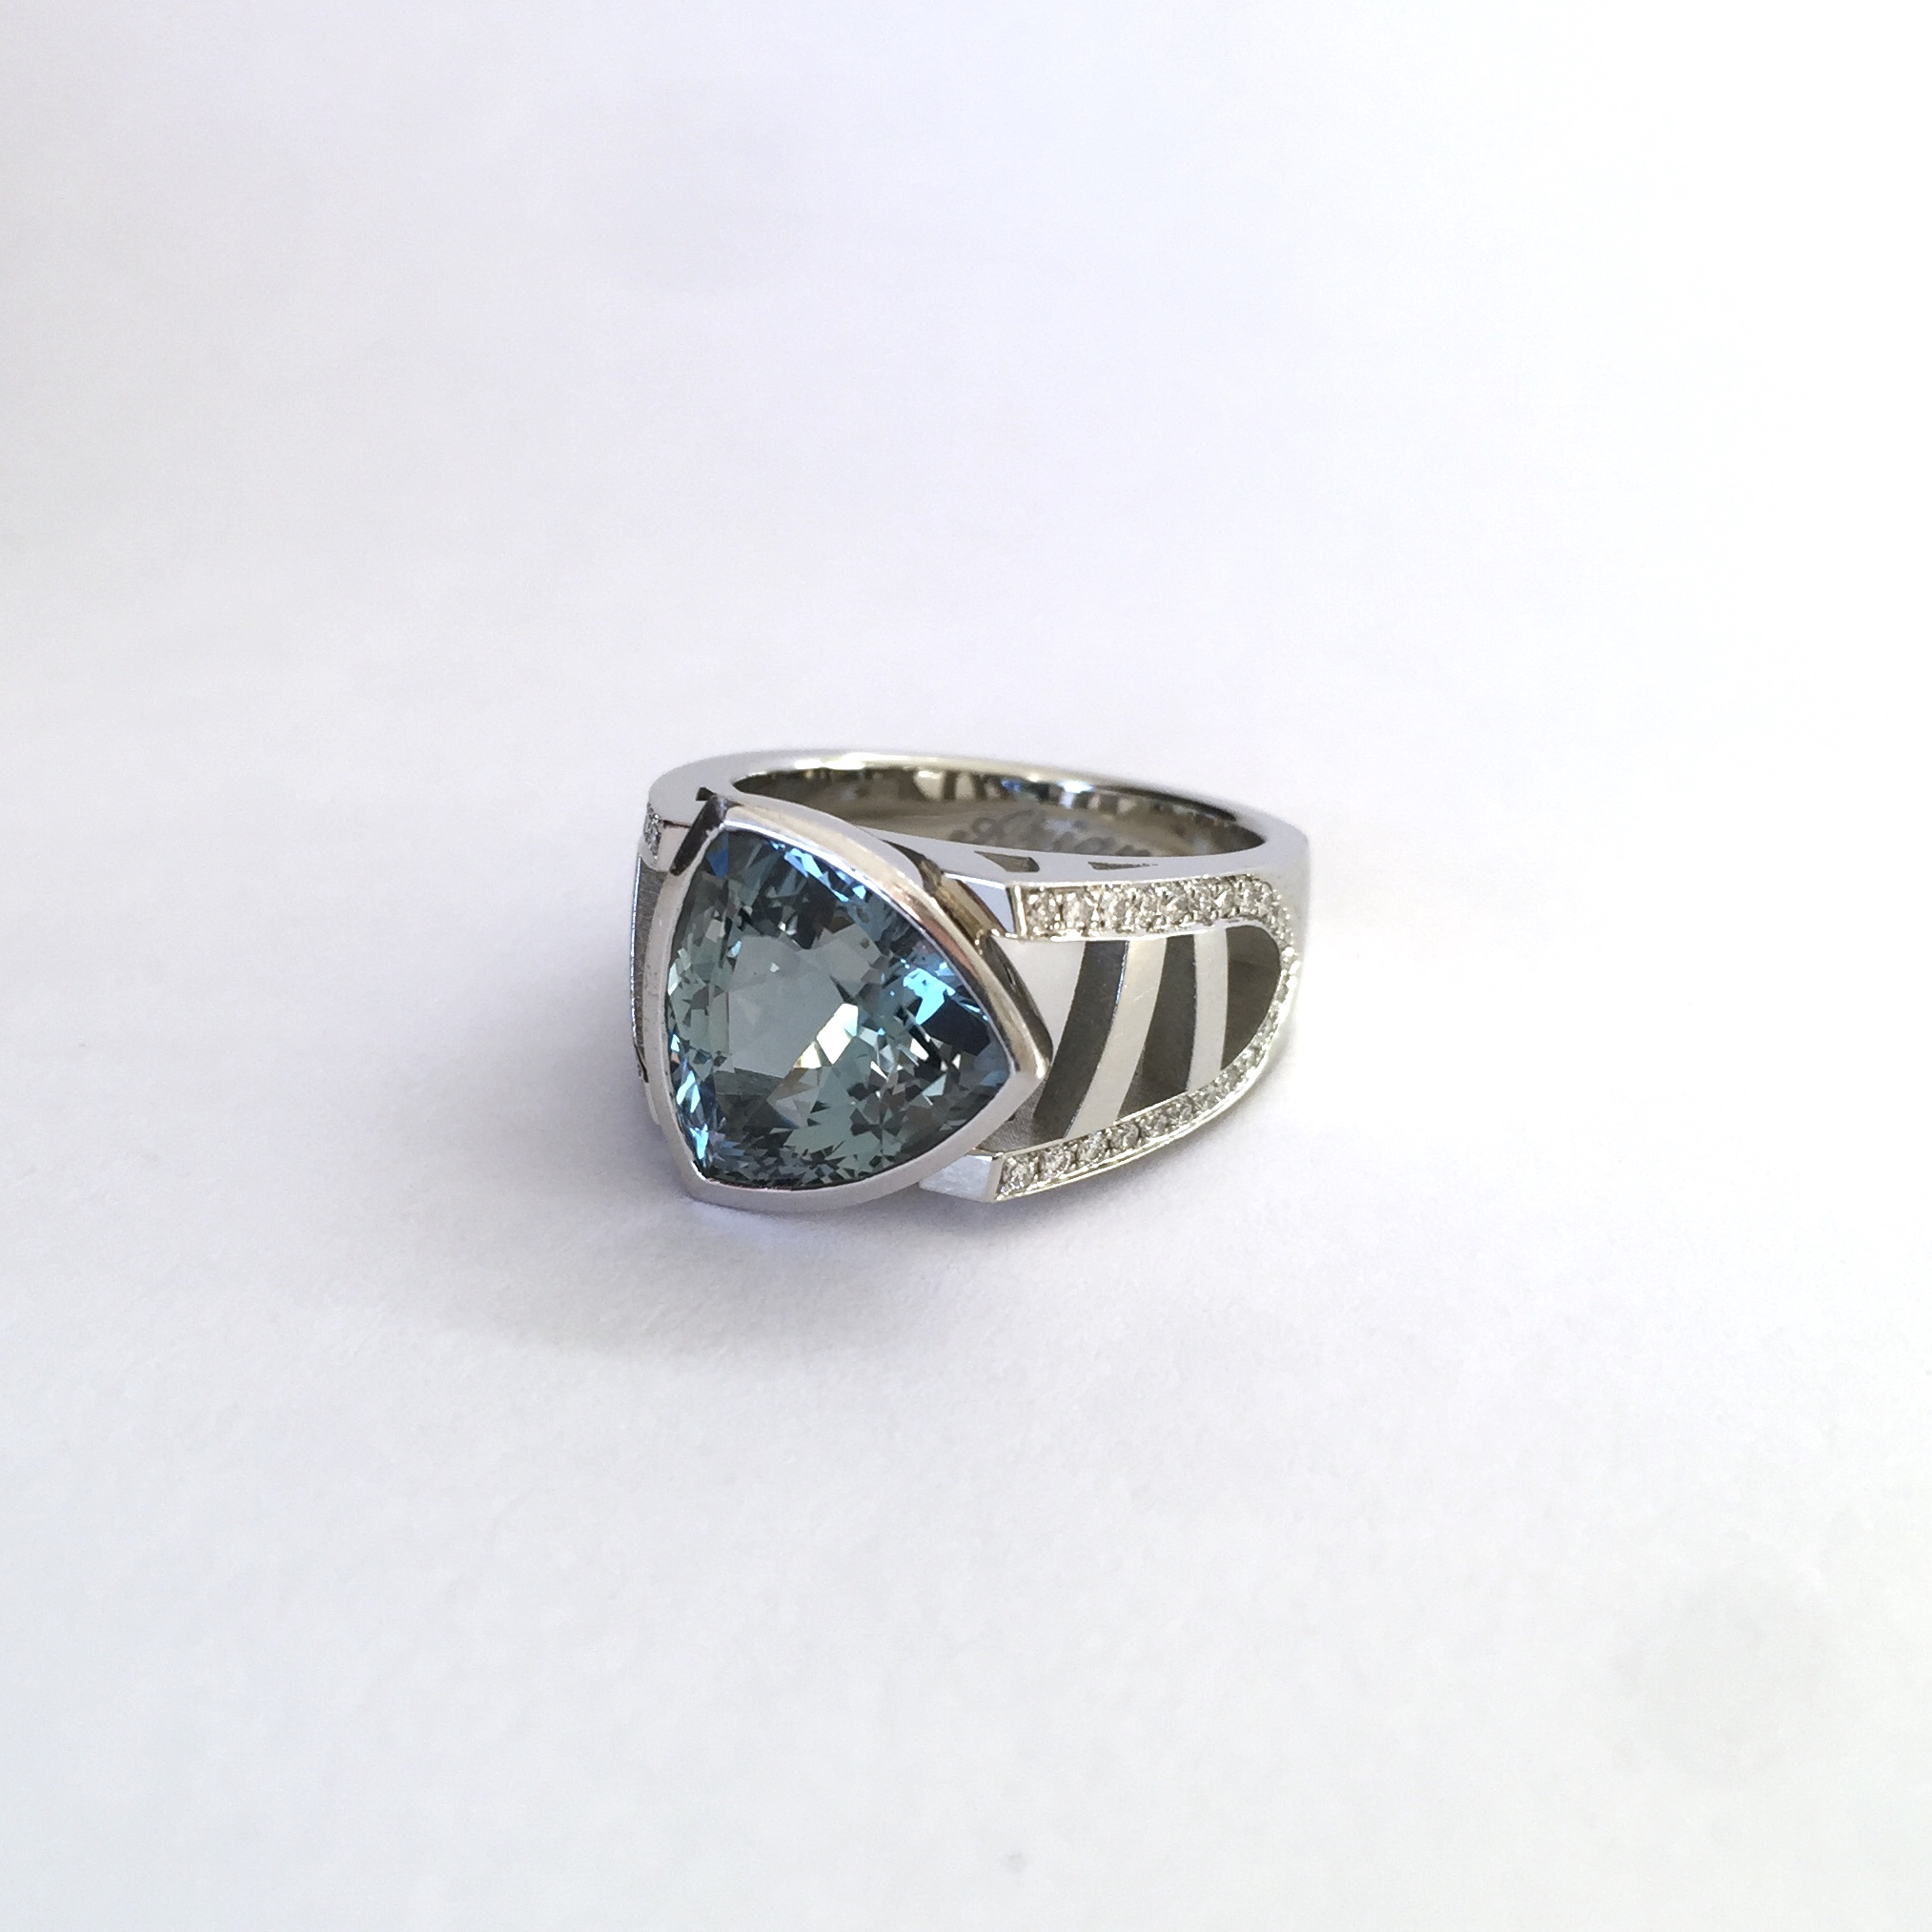 realisation-bague-trillion-topaz-imagine-3d-montreal